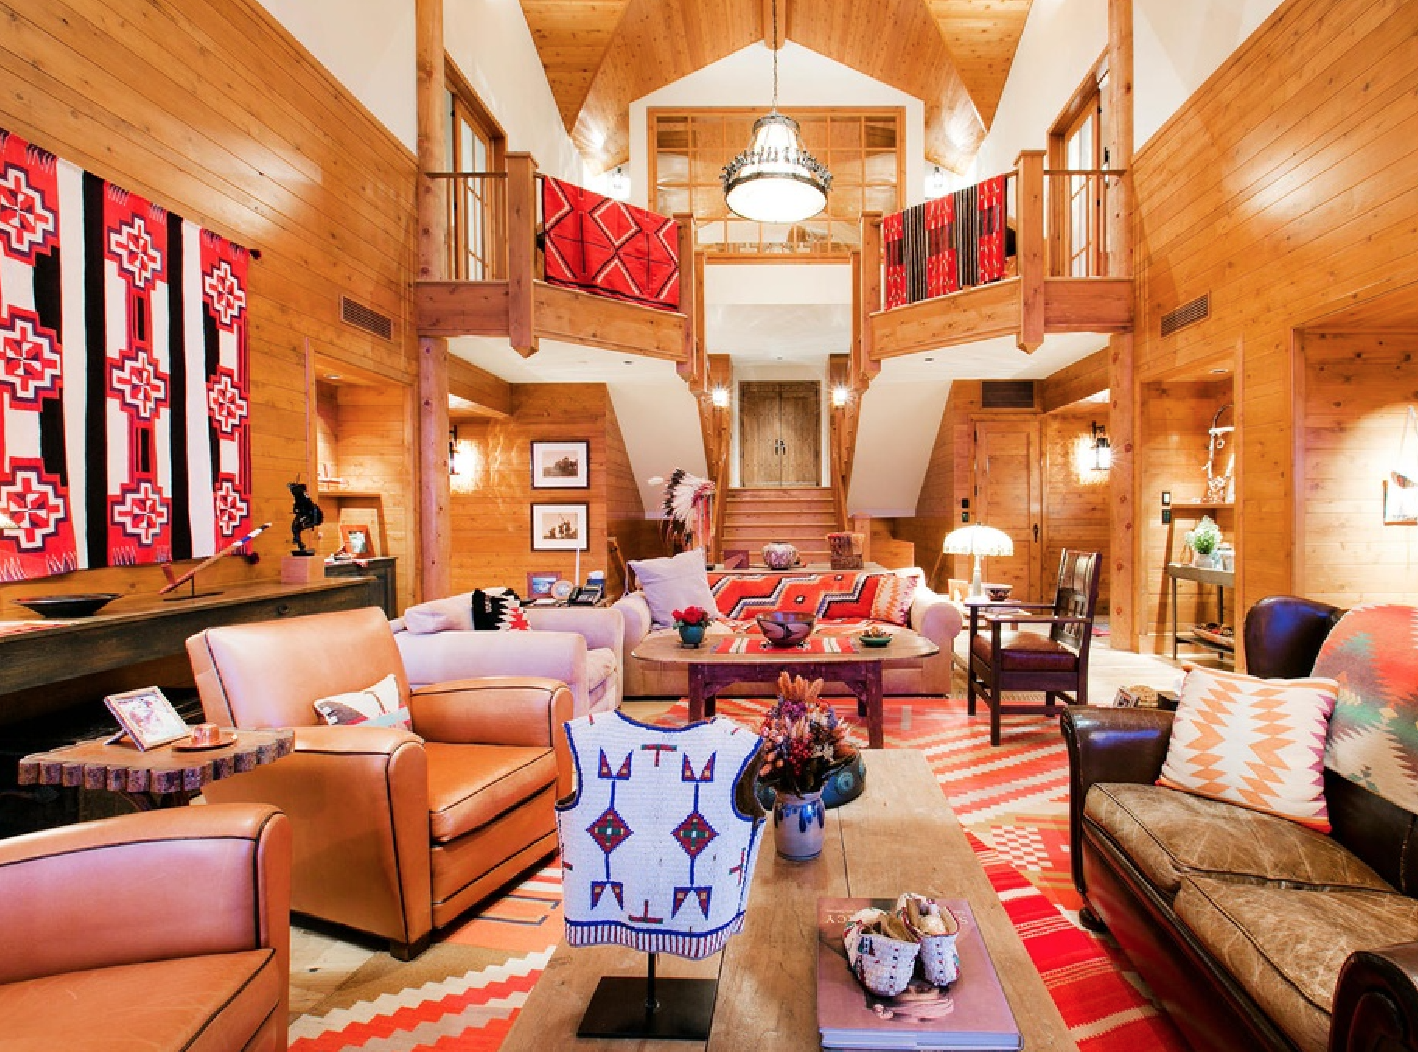 Renowned interior designer, the late Naomi Leff, utilized Native American themes to give this home its perfectly unique character.